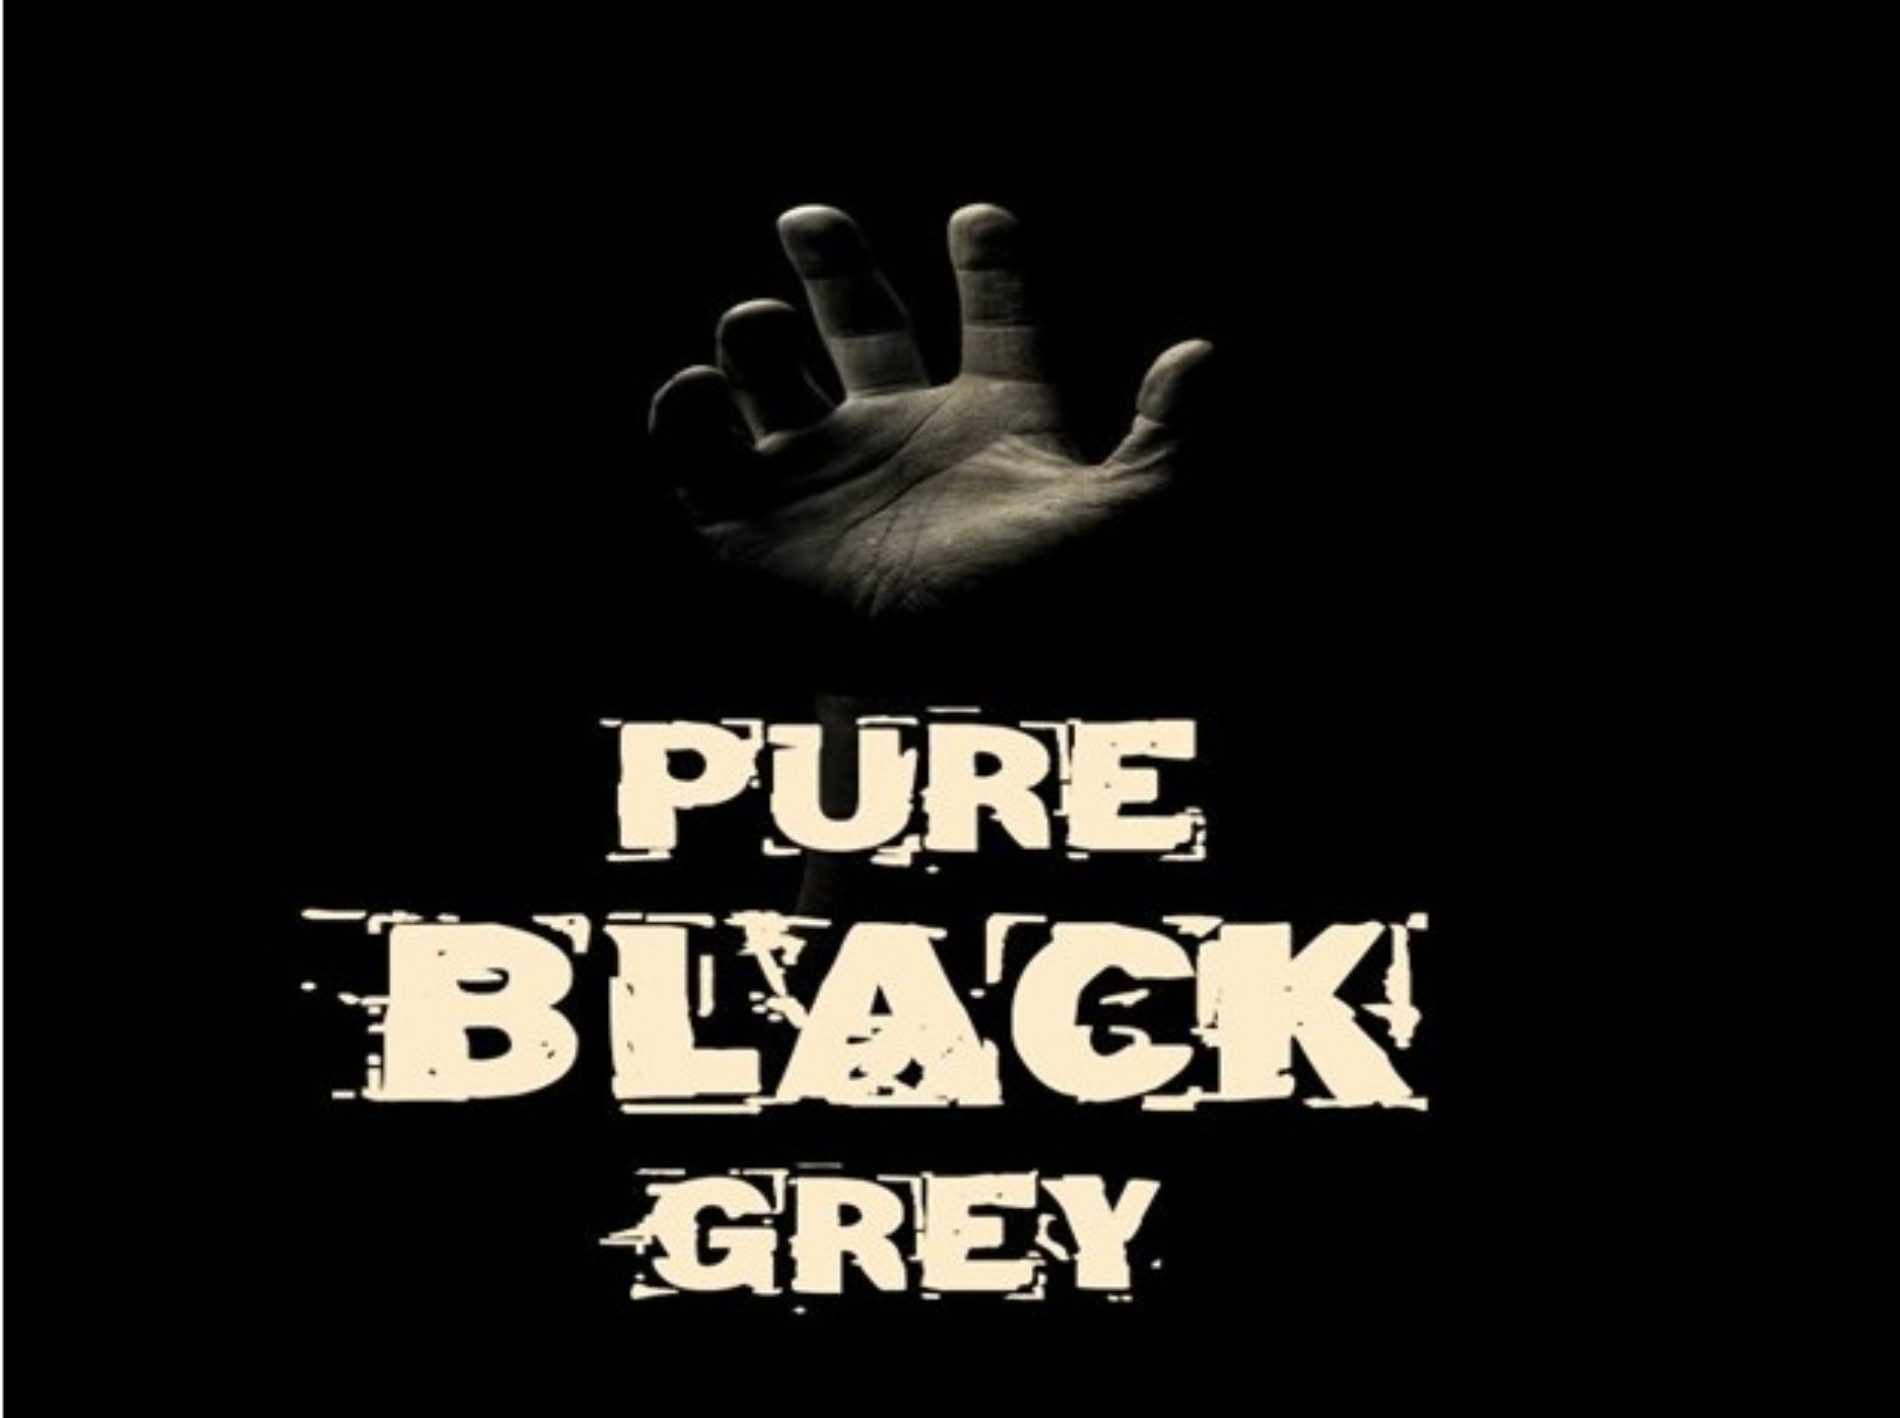 PURE BLACK GREY